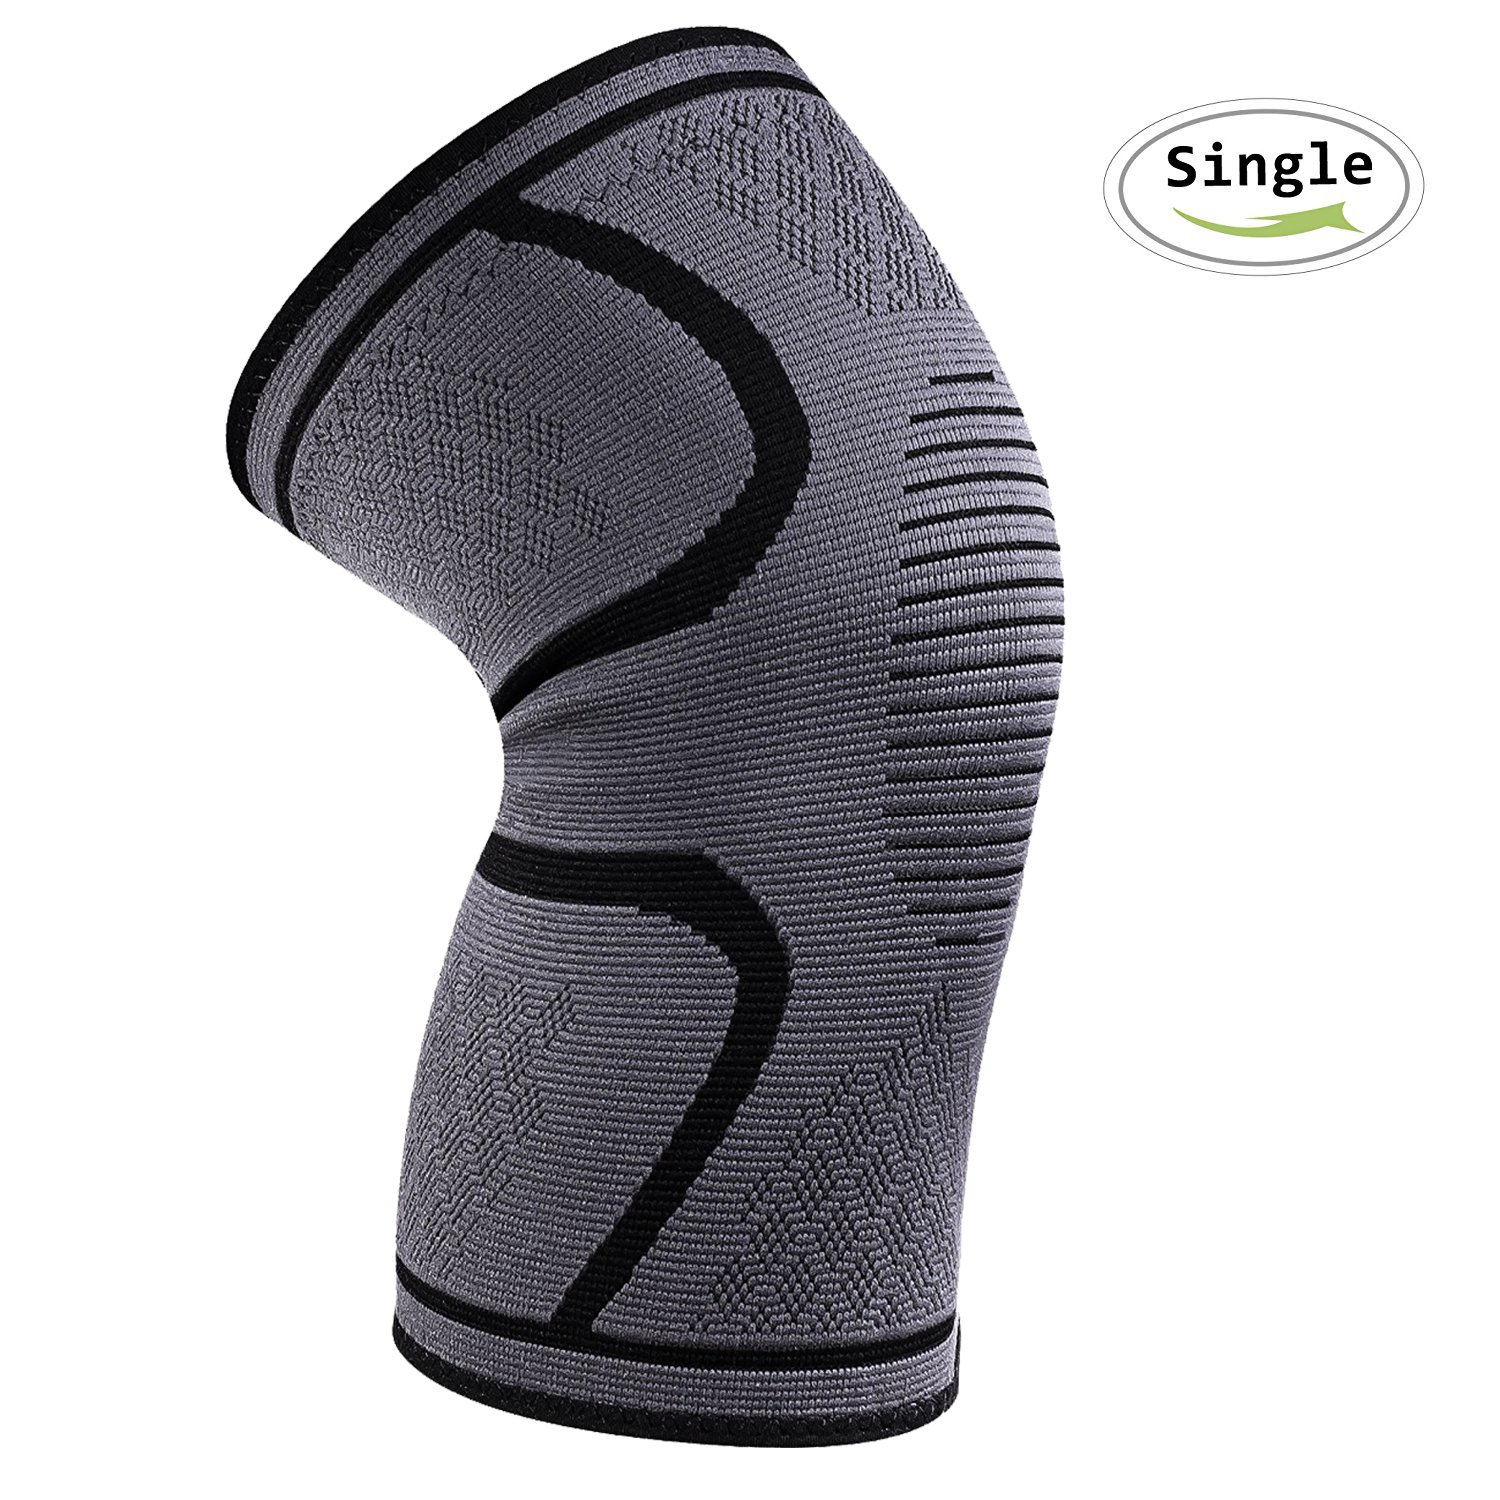 Knee Brace Support,iBuger Compression Knee Sleeve for Meniscus Tear